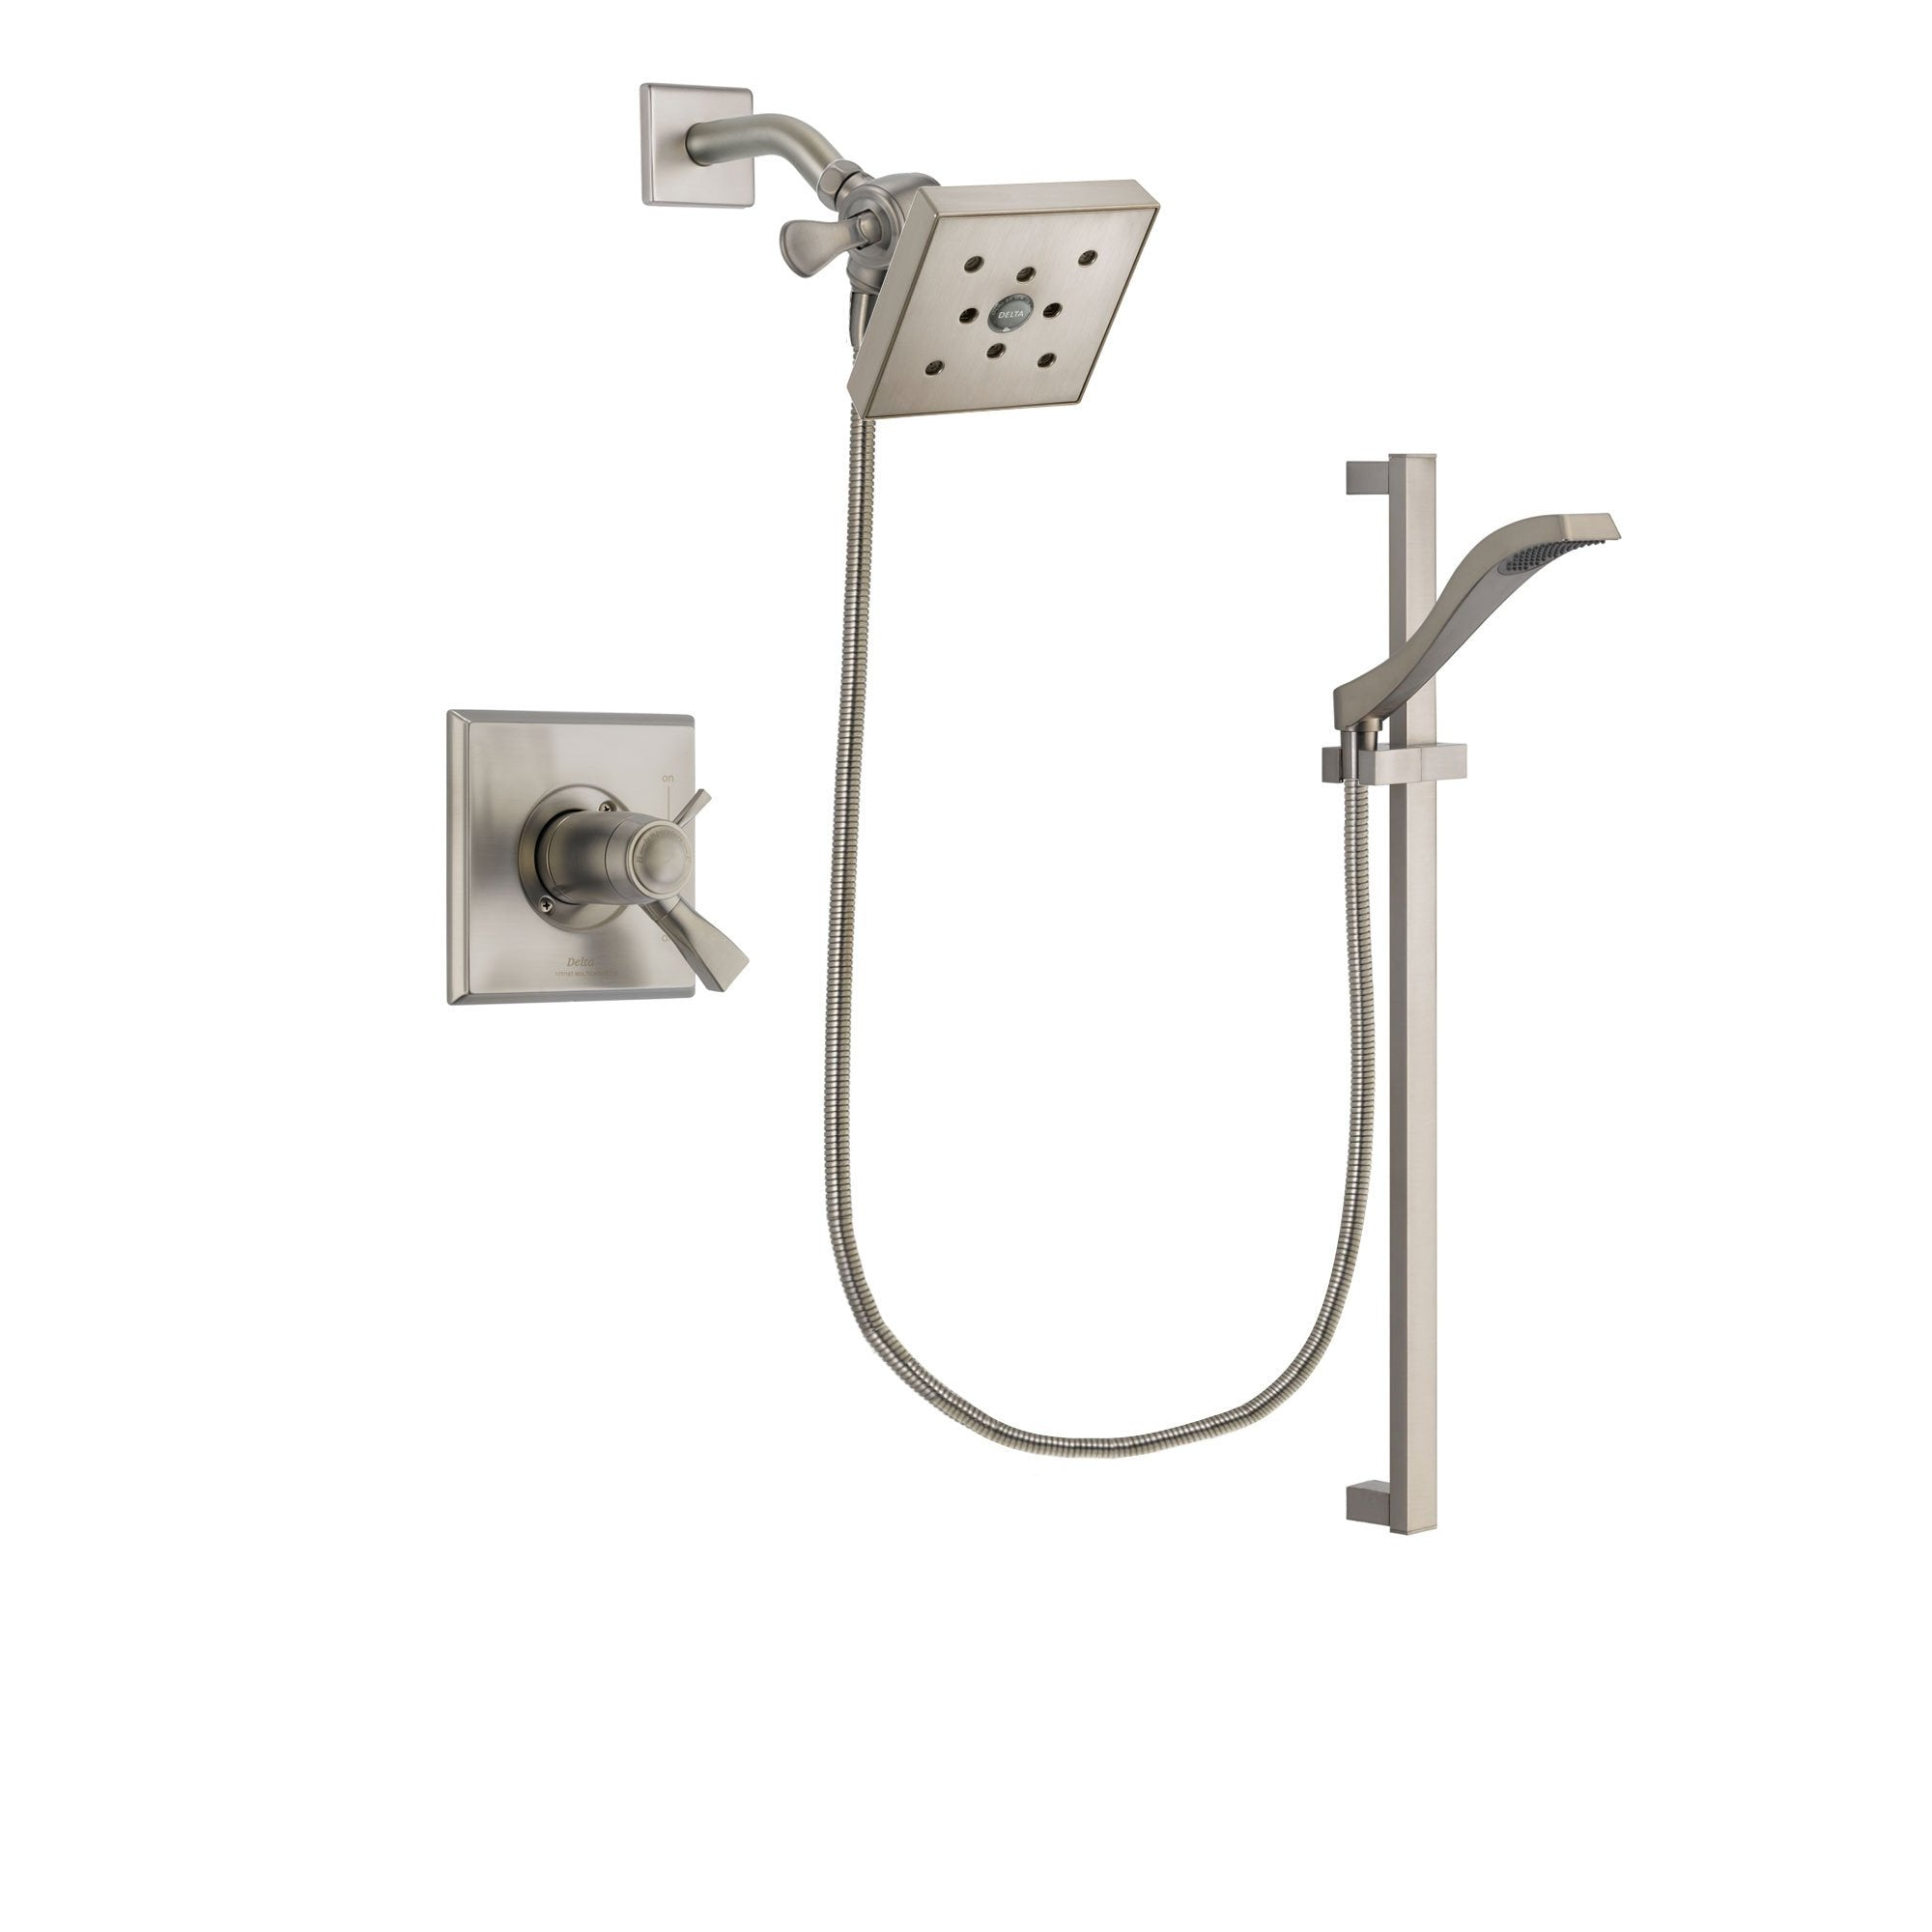 Delta Dryden Stainless Steel Finish Shower Faucet System w/ Hand Spray DSP2256V